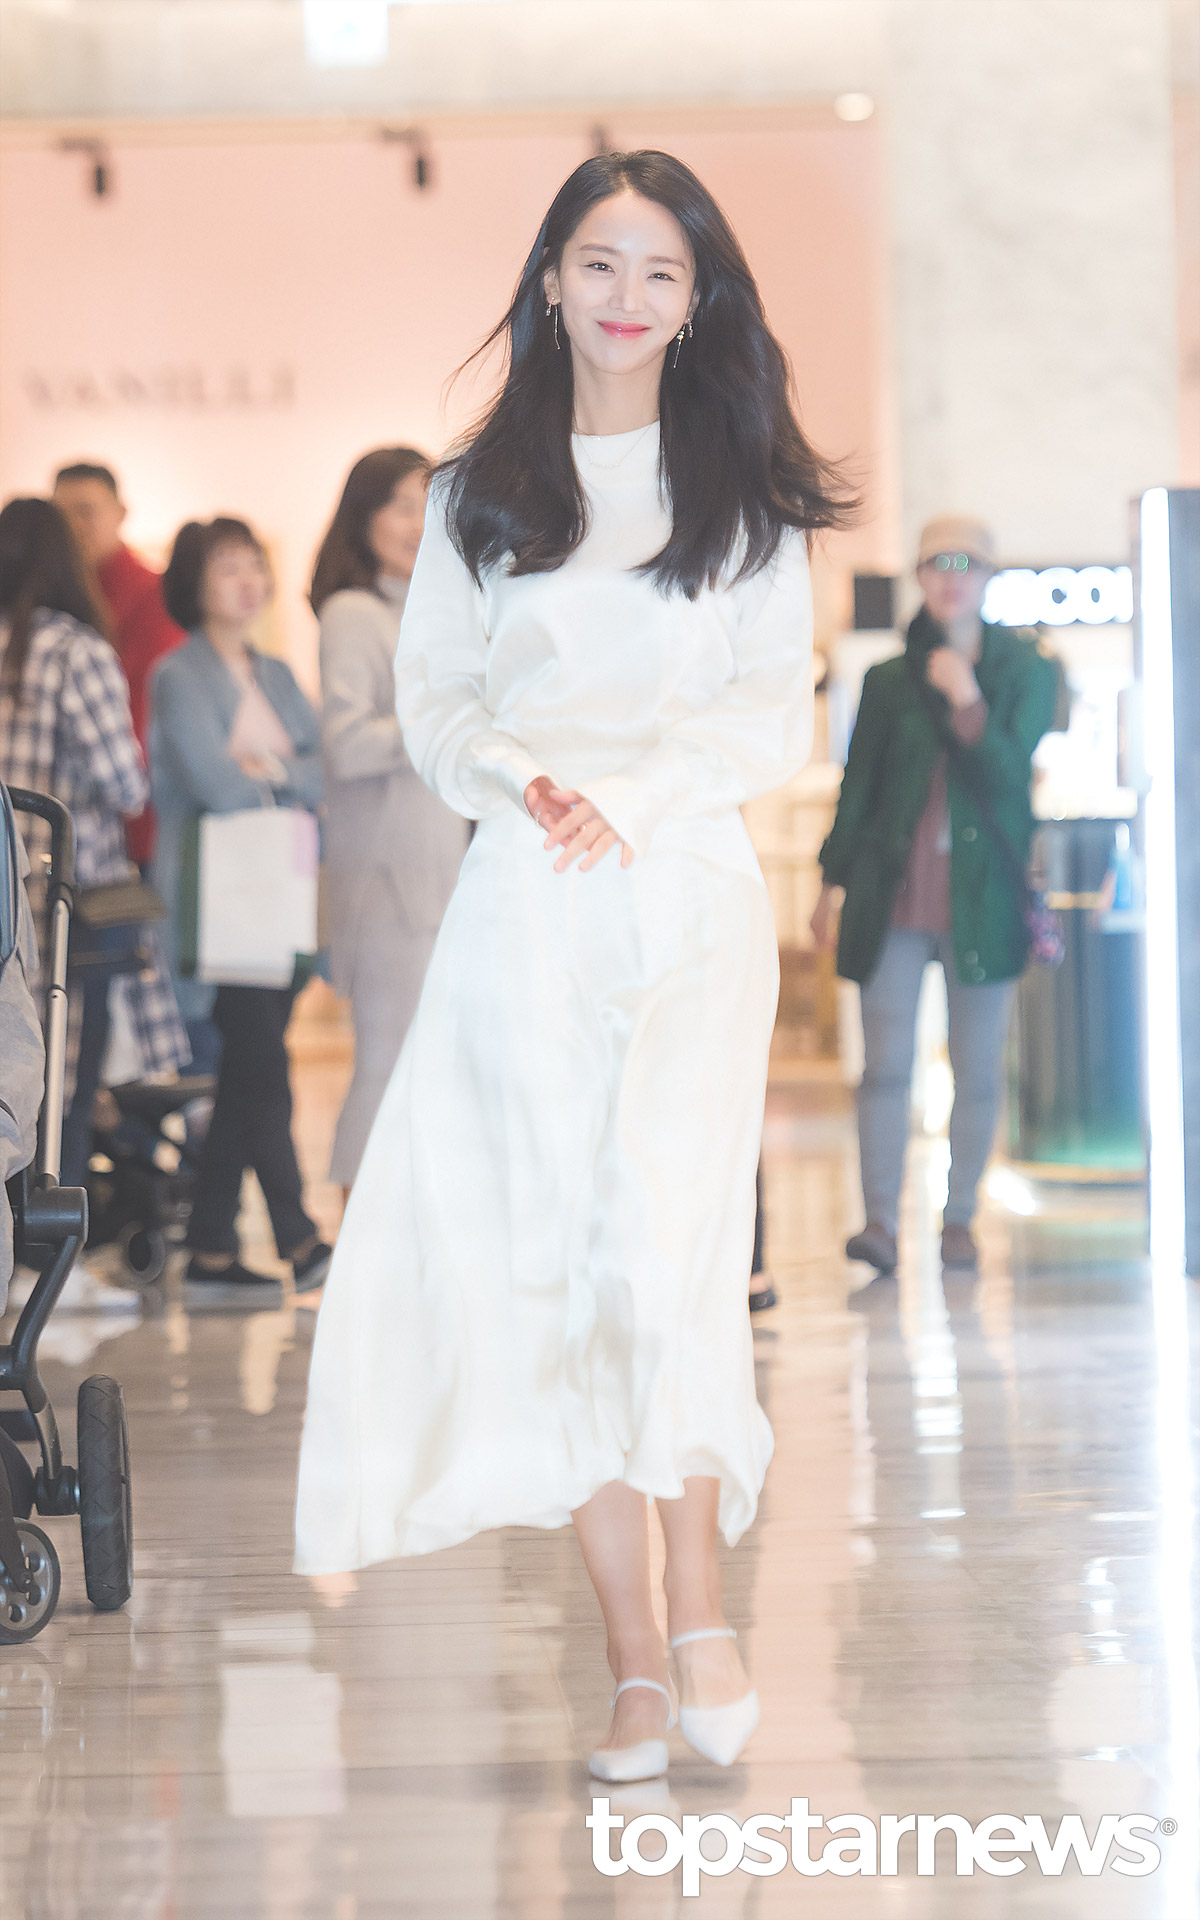 best korean celeb outfit, korean actors fashion, shin hye sun